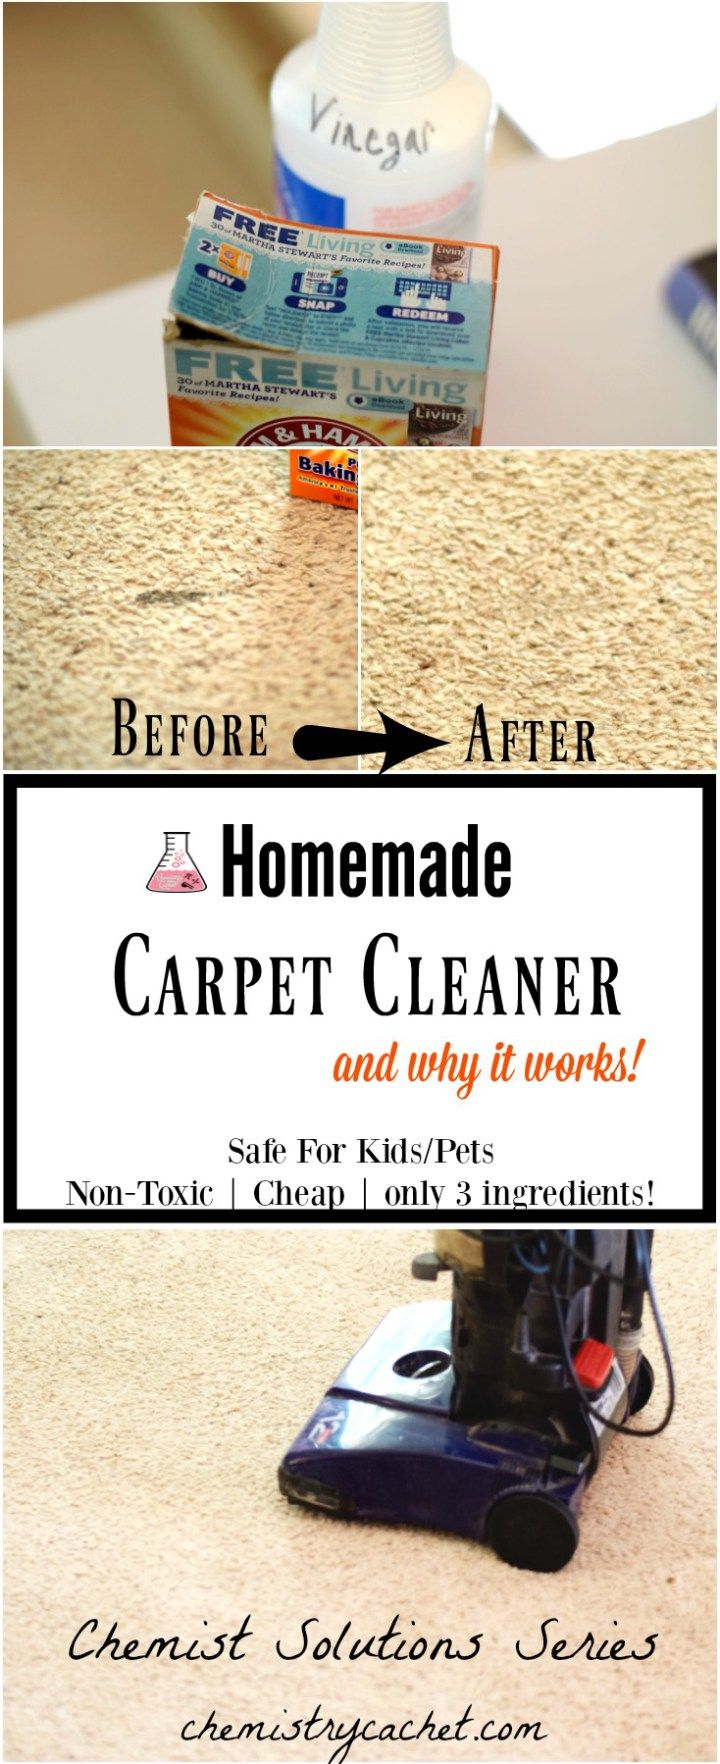 Chemistry Cachet's Homemade Carpet Cleaner Recipe. Safe, easy, and cheap carpet stain remover plus chemist tips on WHY it works! on chemistrycachet.com